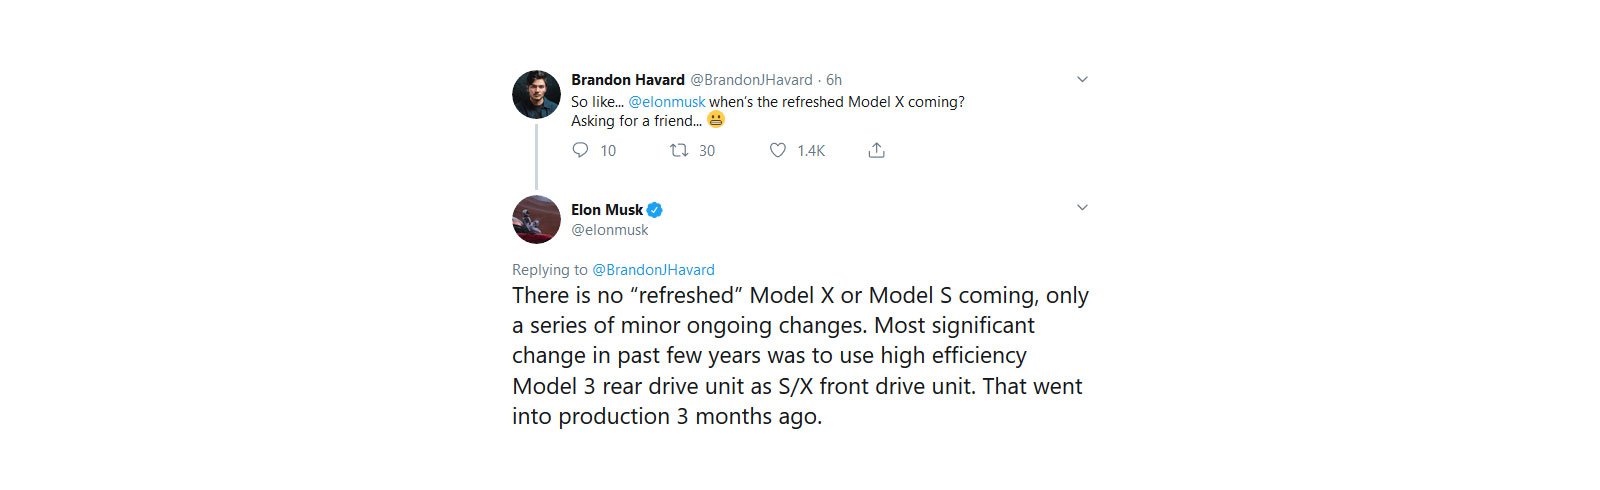 "Elon Musk: no ""refreshed"" Model X or Model S coming"